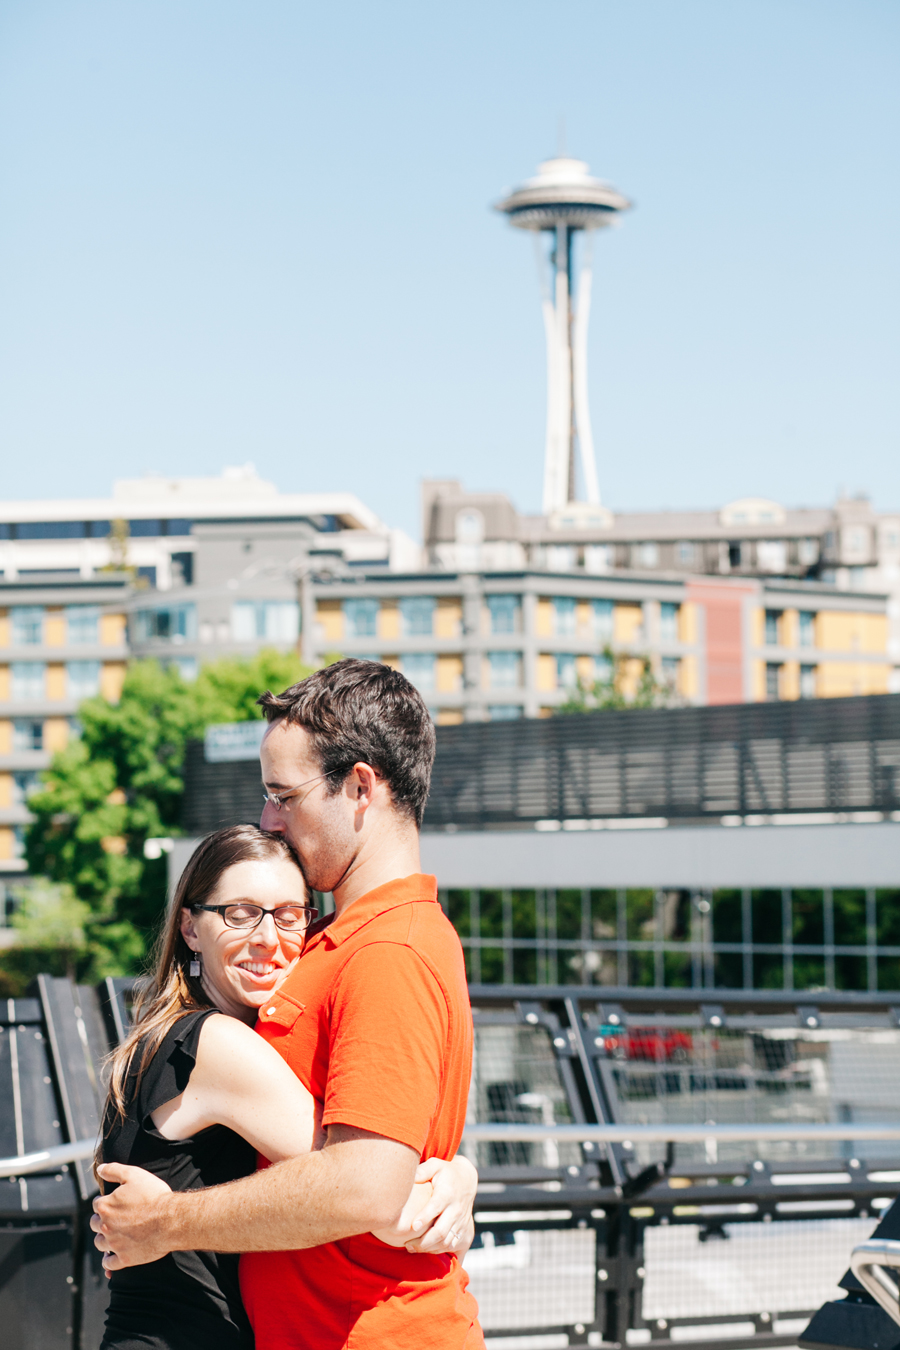 021-olympic-sculpture-park-seattle-washington-engagement-session-katheryn-moran-photography.jpg